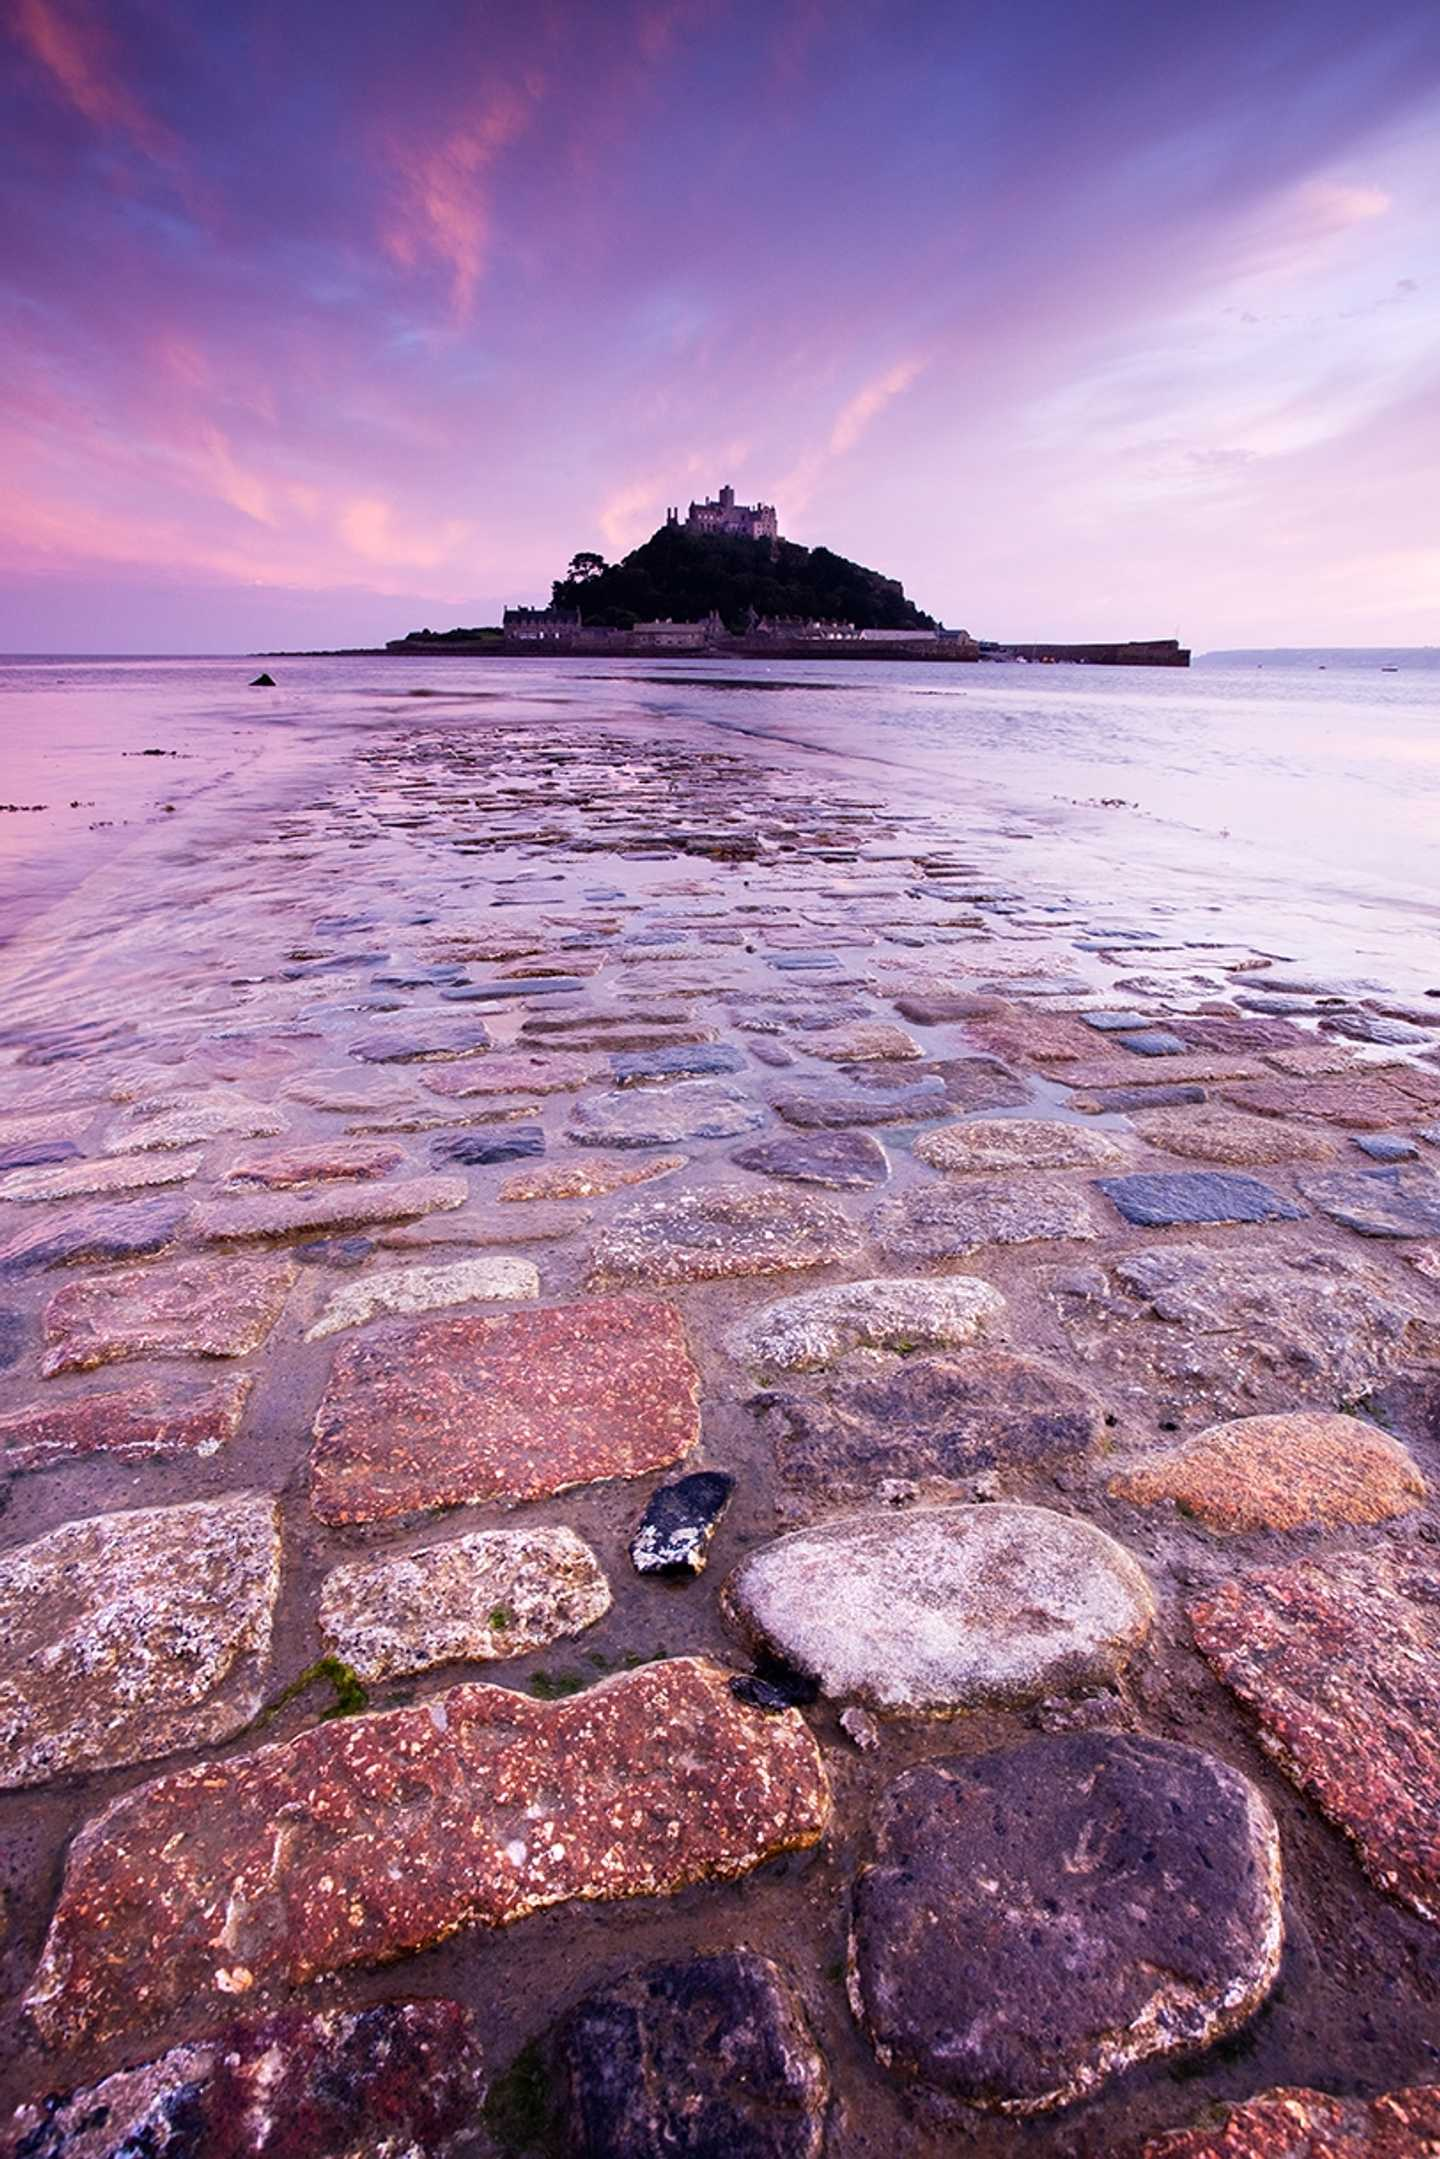 A view of St Michael's Mount from the beach